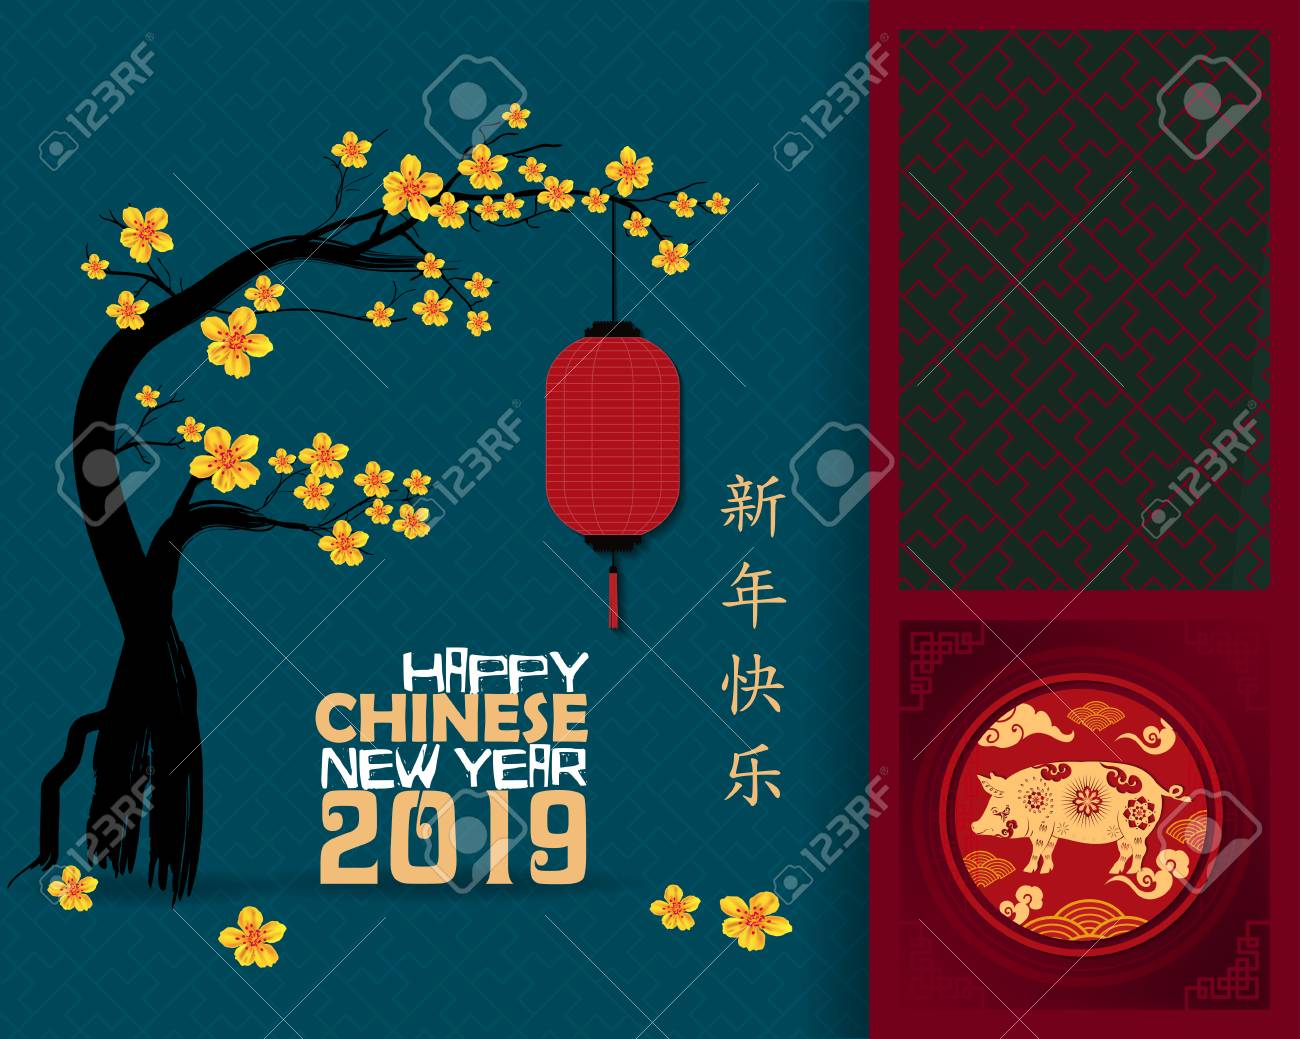 Creative chinese new year 2019 invitation cards. Year of the pig. Chinese characters mean Happy New Year - 110247237